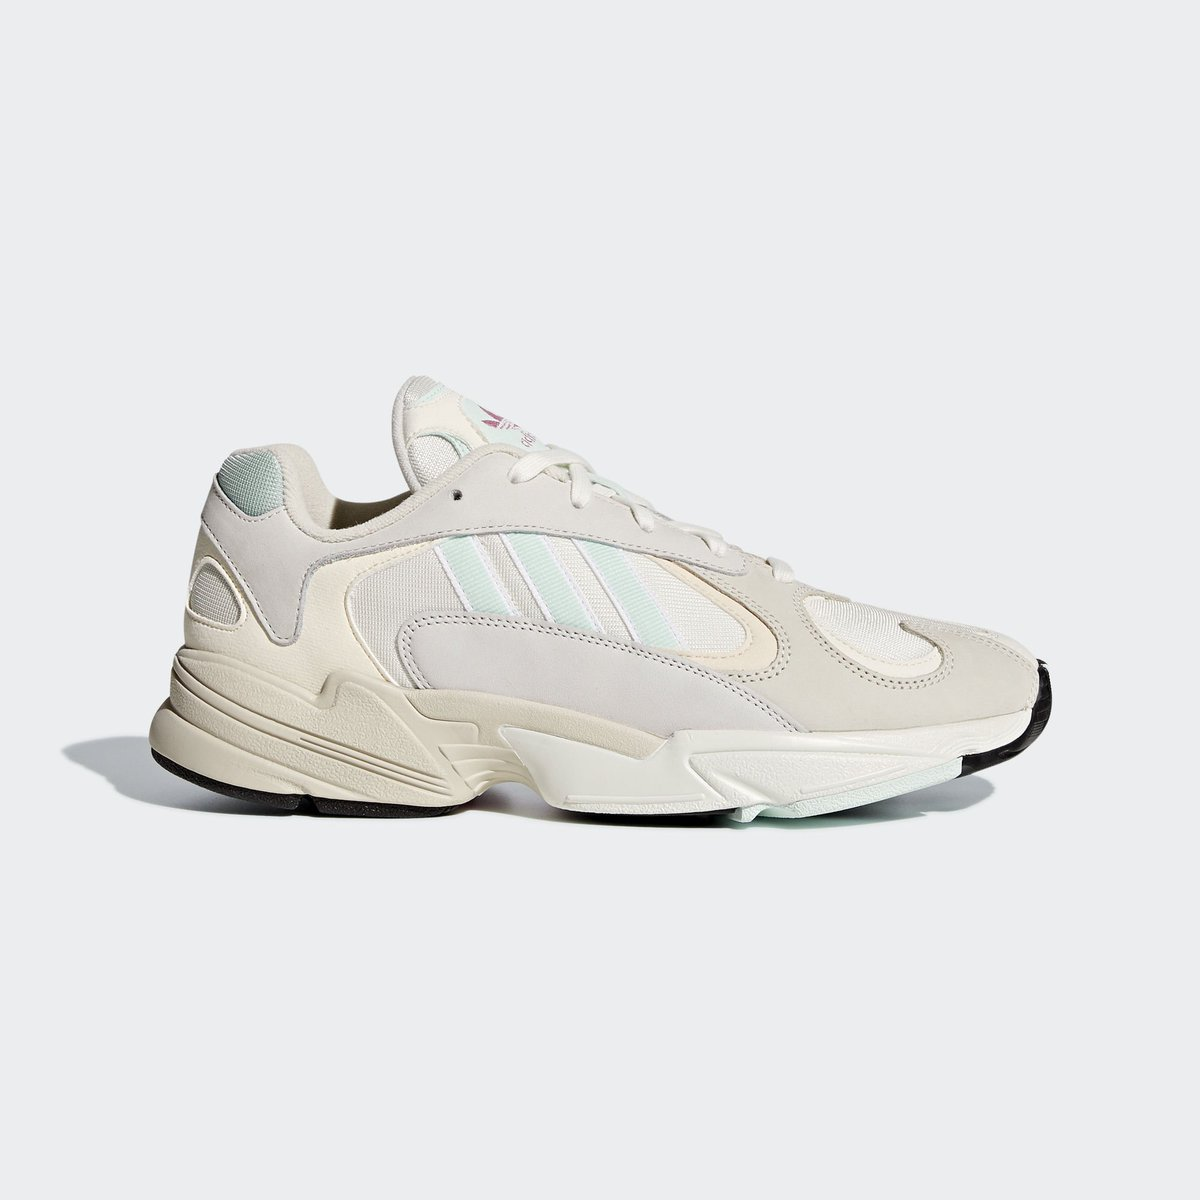 fb84d4f8f Under retail on  adidas US. adidas Yung 1 Ecru Tint. Retail  120. Now  102  shipped. Sign up for newsletter for 15% off. Yung 1 http   bit.ly 2LxwKlc  ...